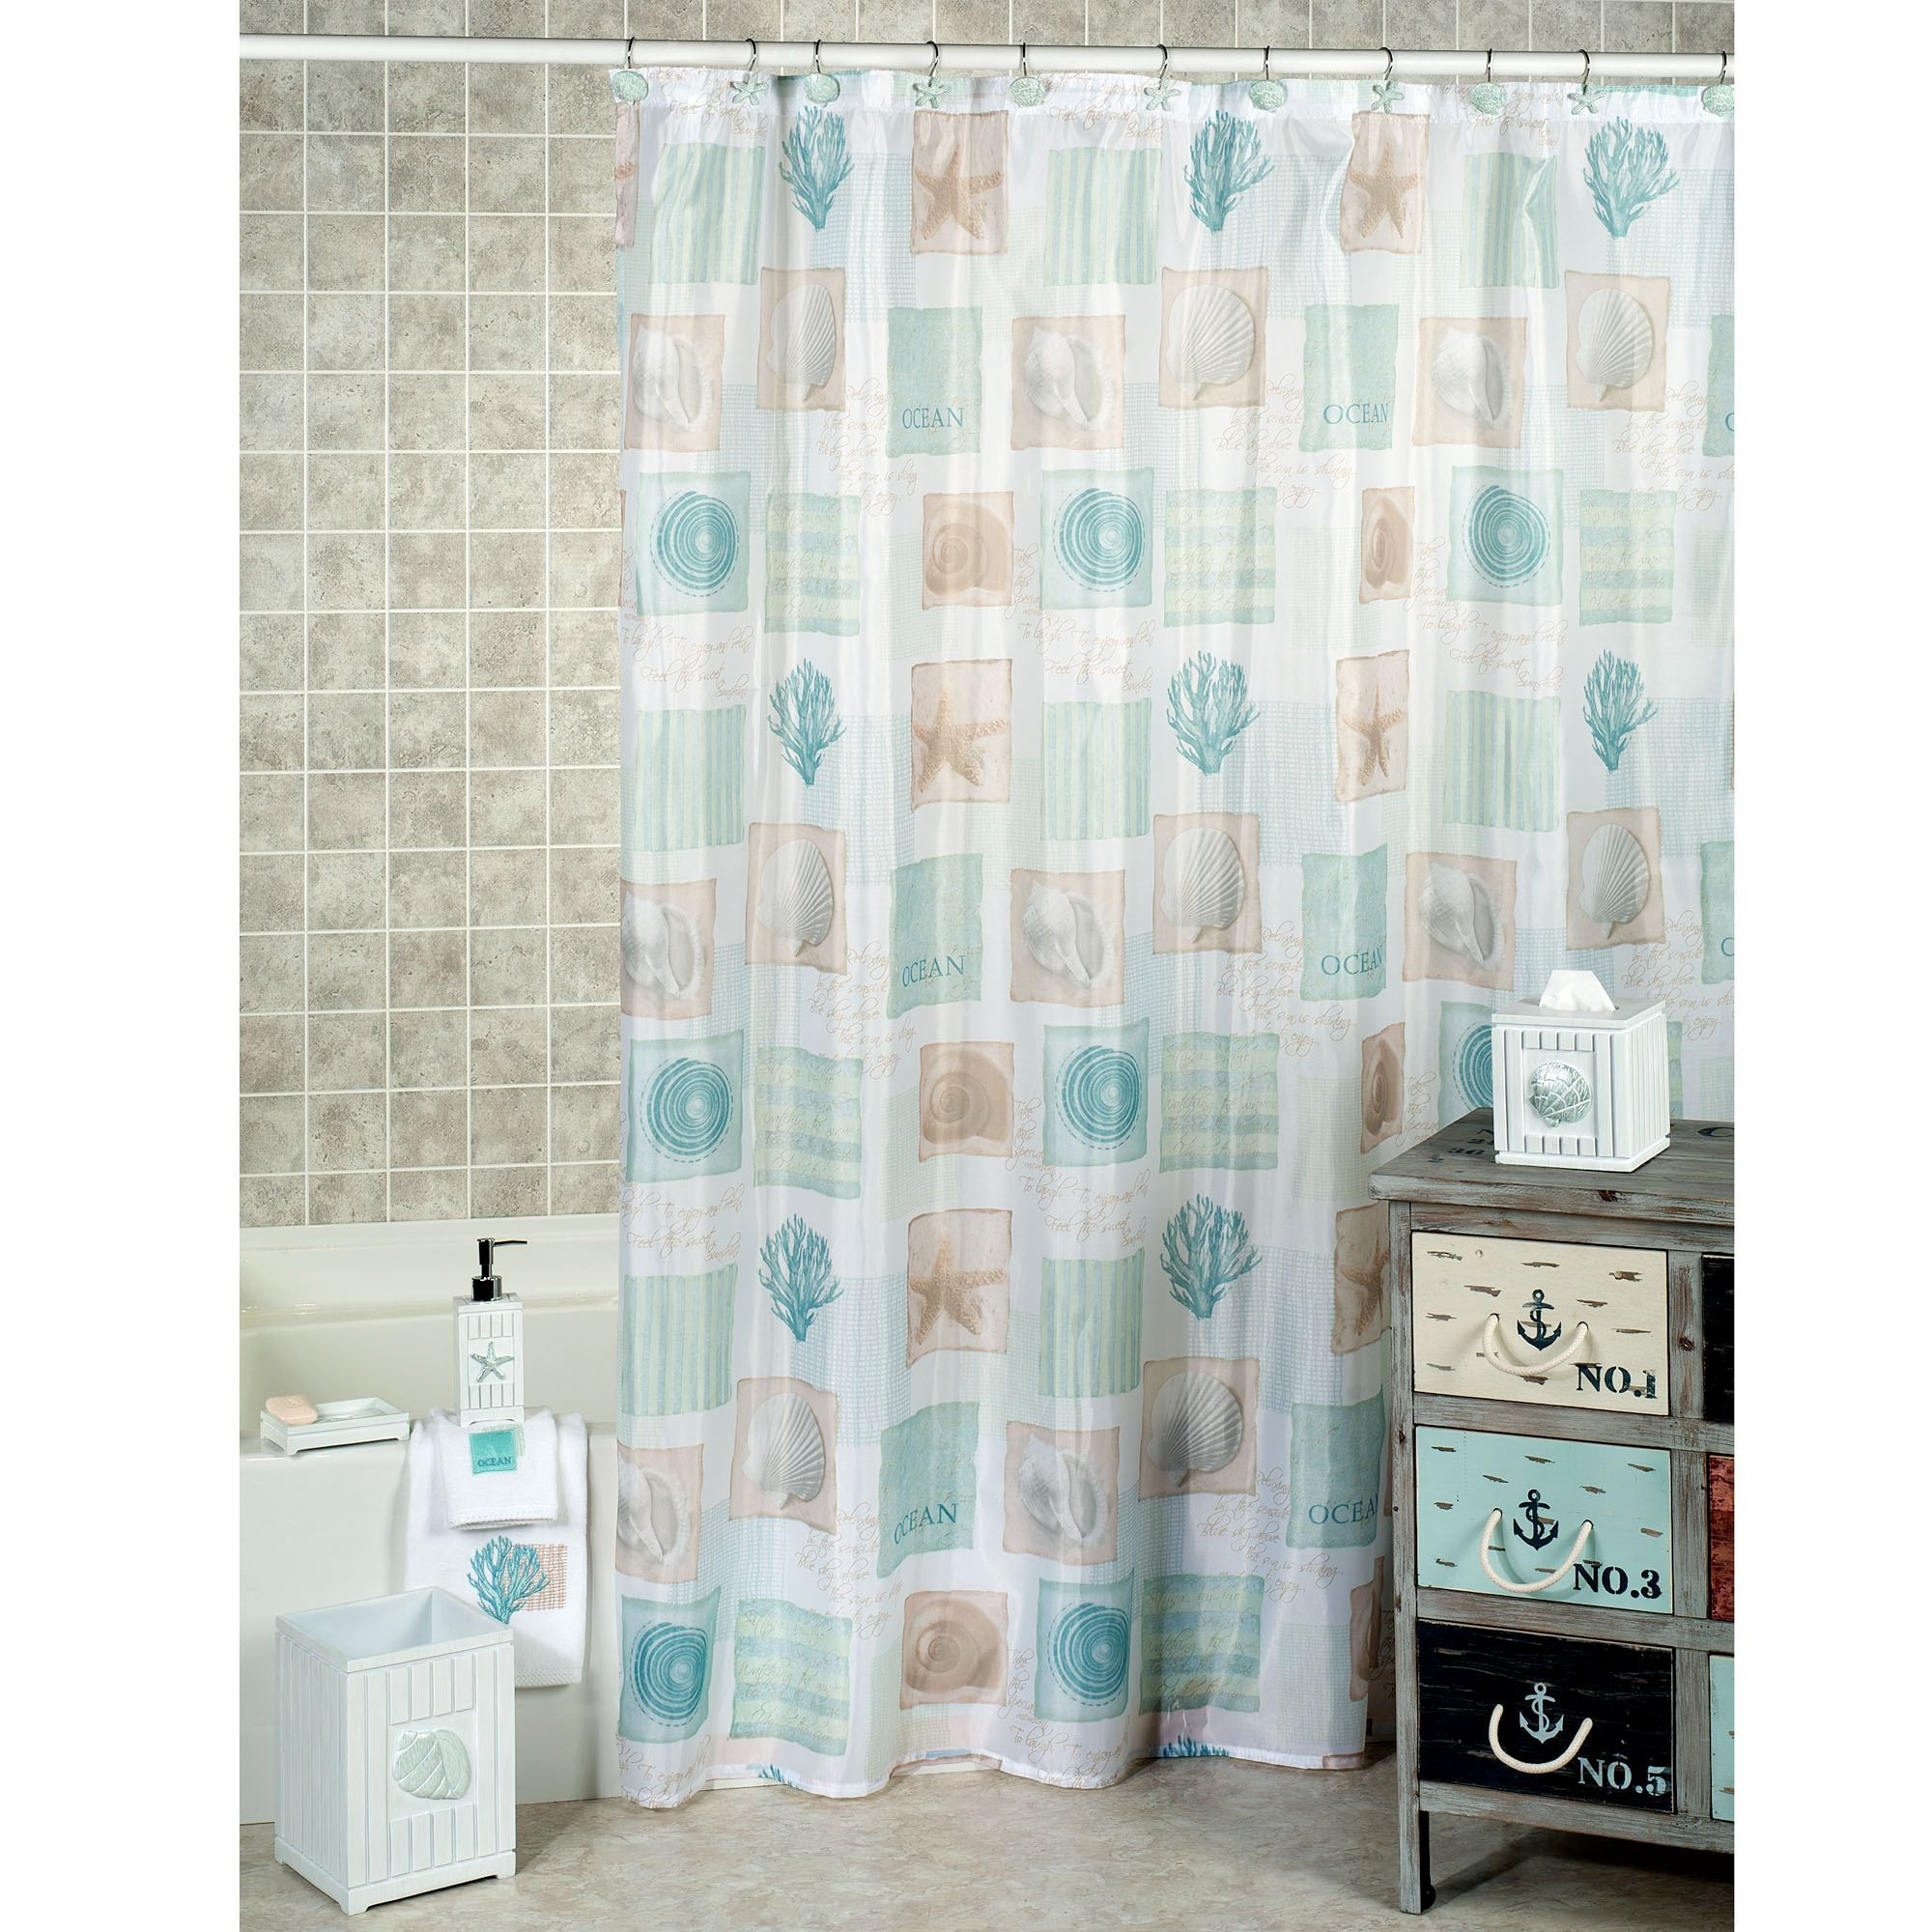 Nautical bathroom curtains - Whether You Live In A Beach House Or A City Apartment You Can Create A Carefree Bath Environment With The Seaside Seashell Coastal Shower Curtain